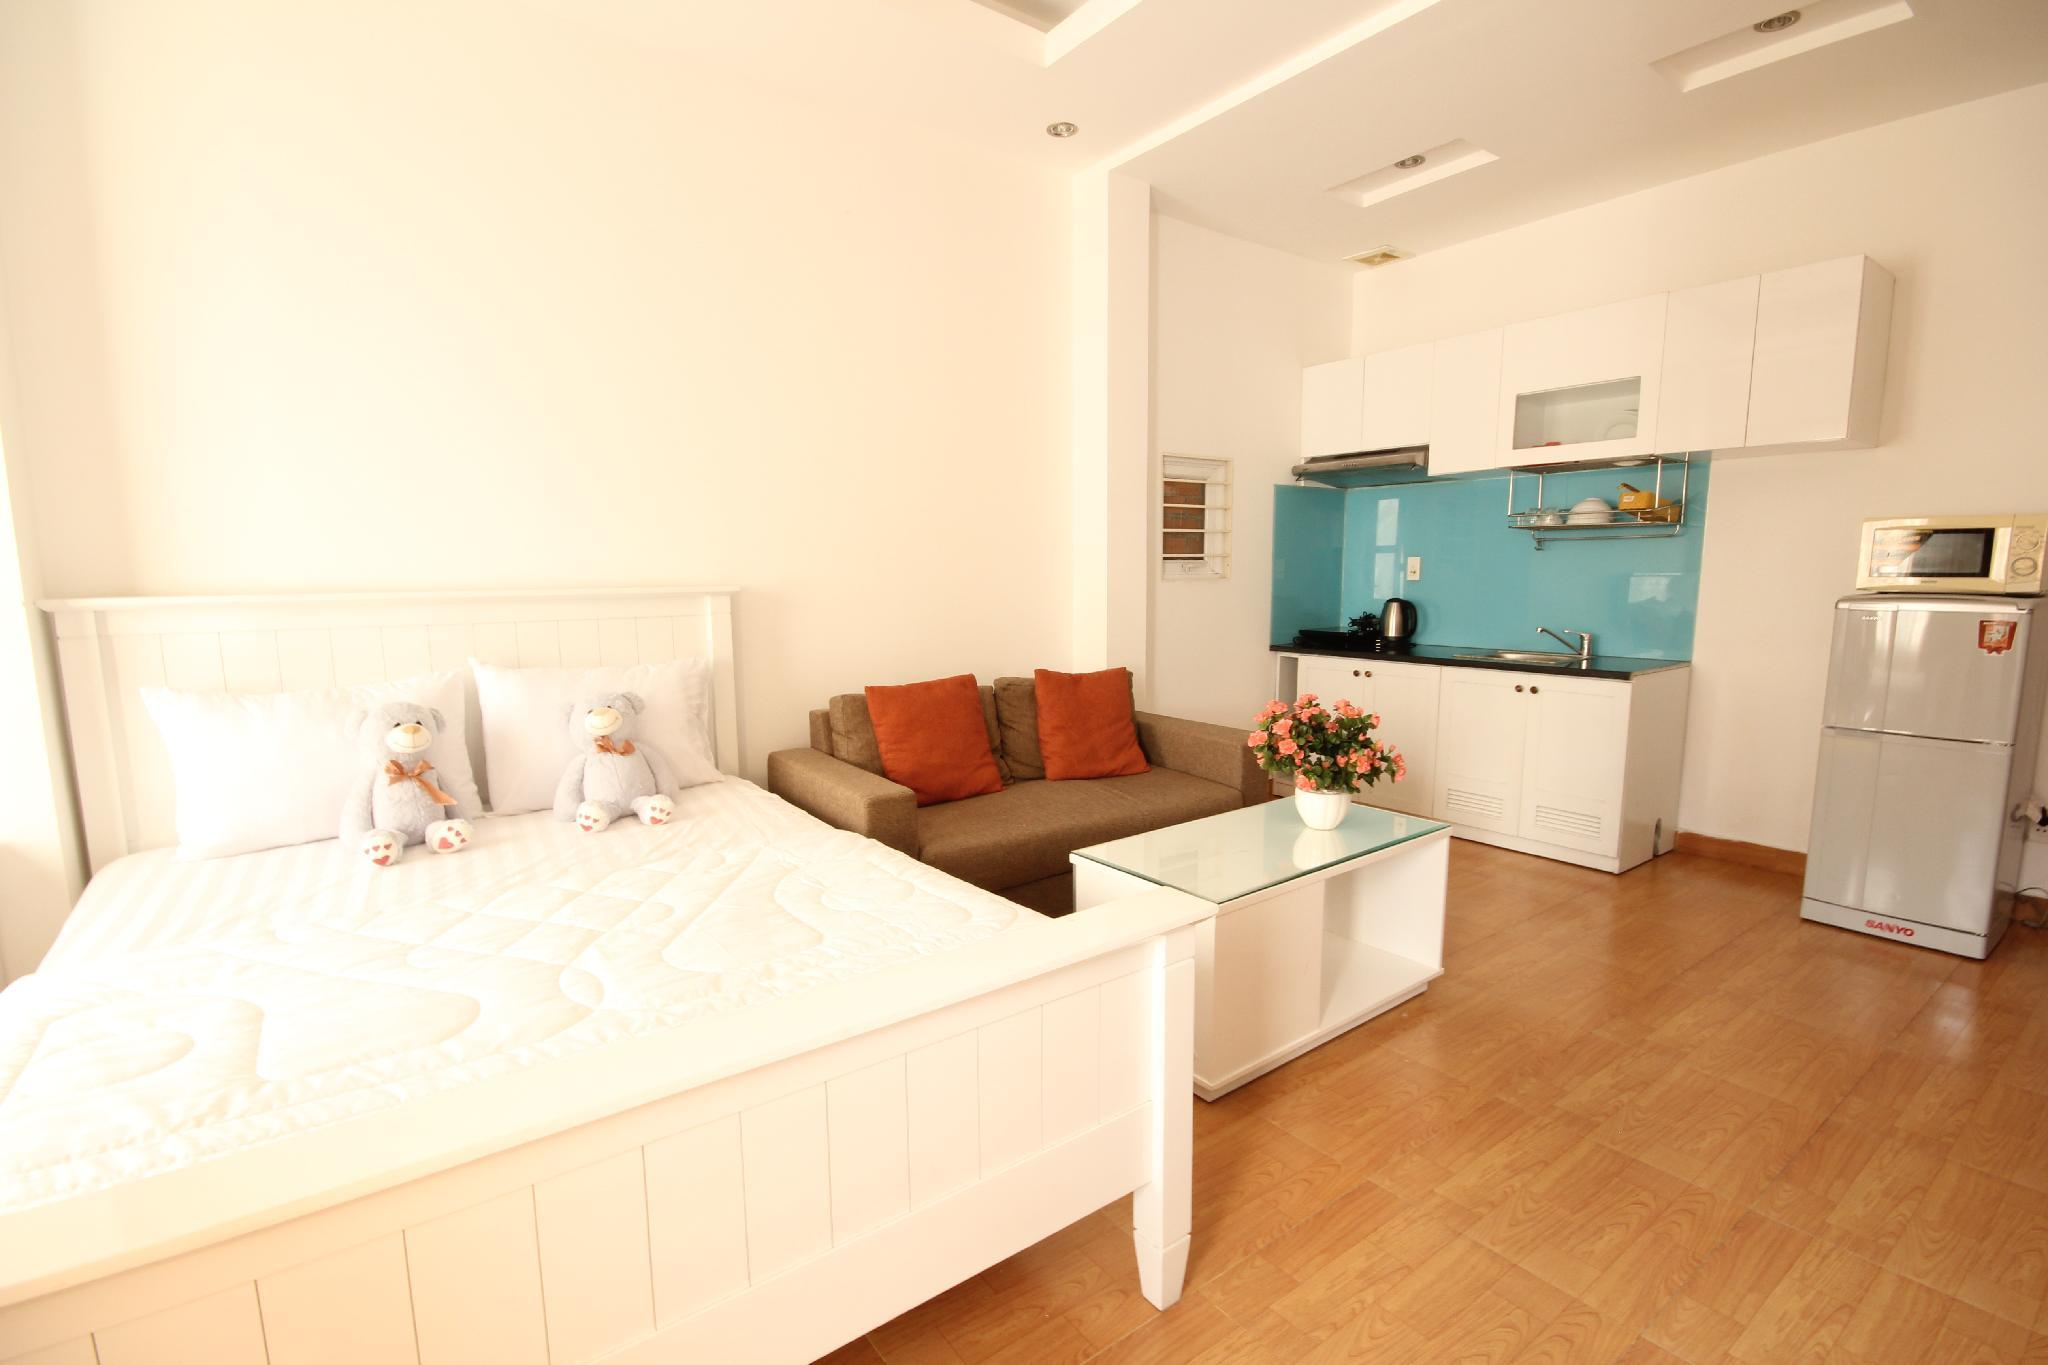 Smiley Apartment 3  201 Seviced Studio Apartment With Balcony